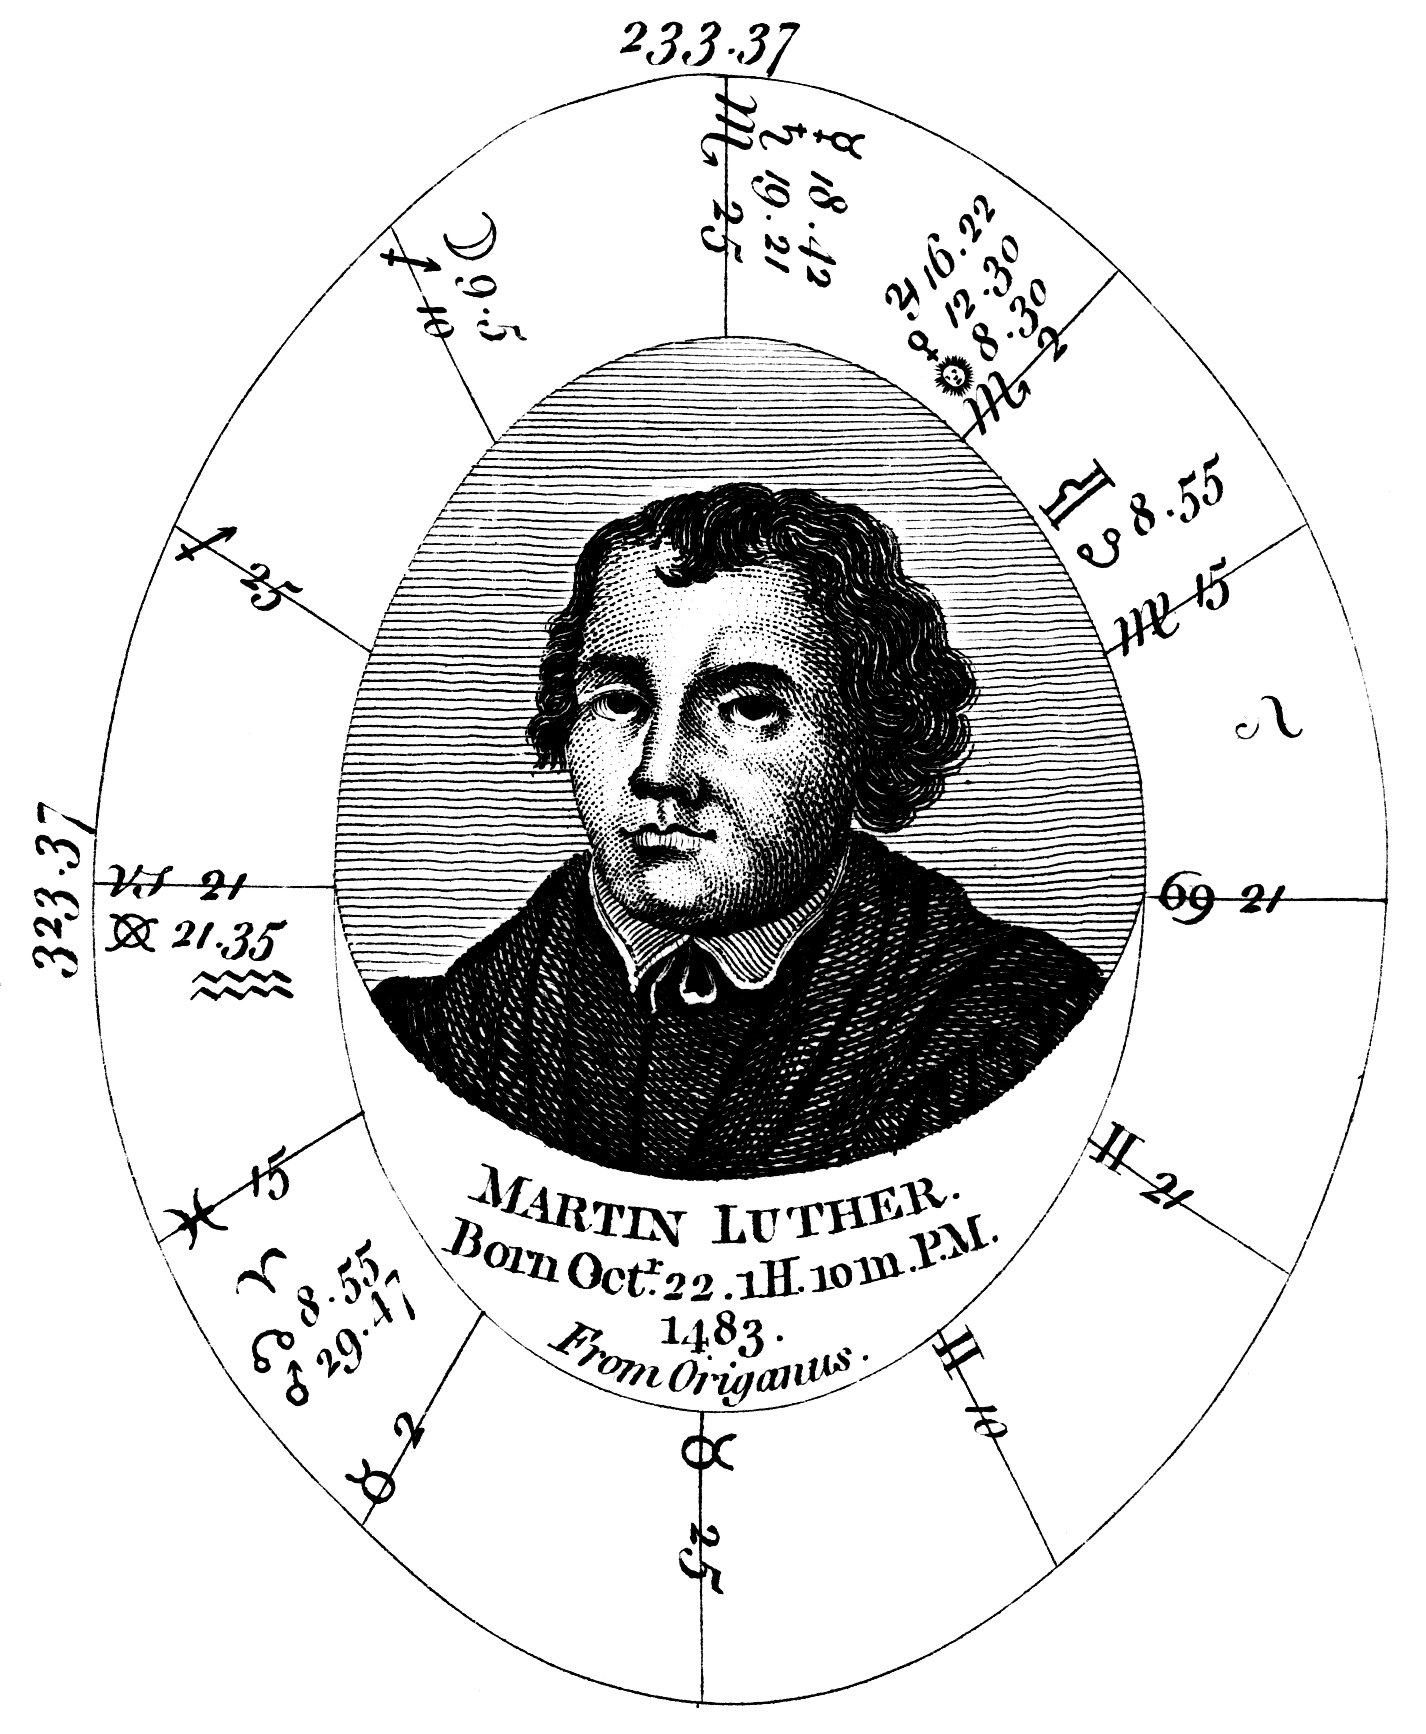 Birth Chart Horoscope: Horoscope-MartinLuther.jpg - Wikipedia,Chart